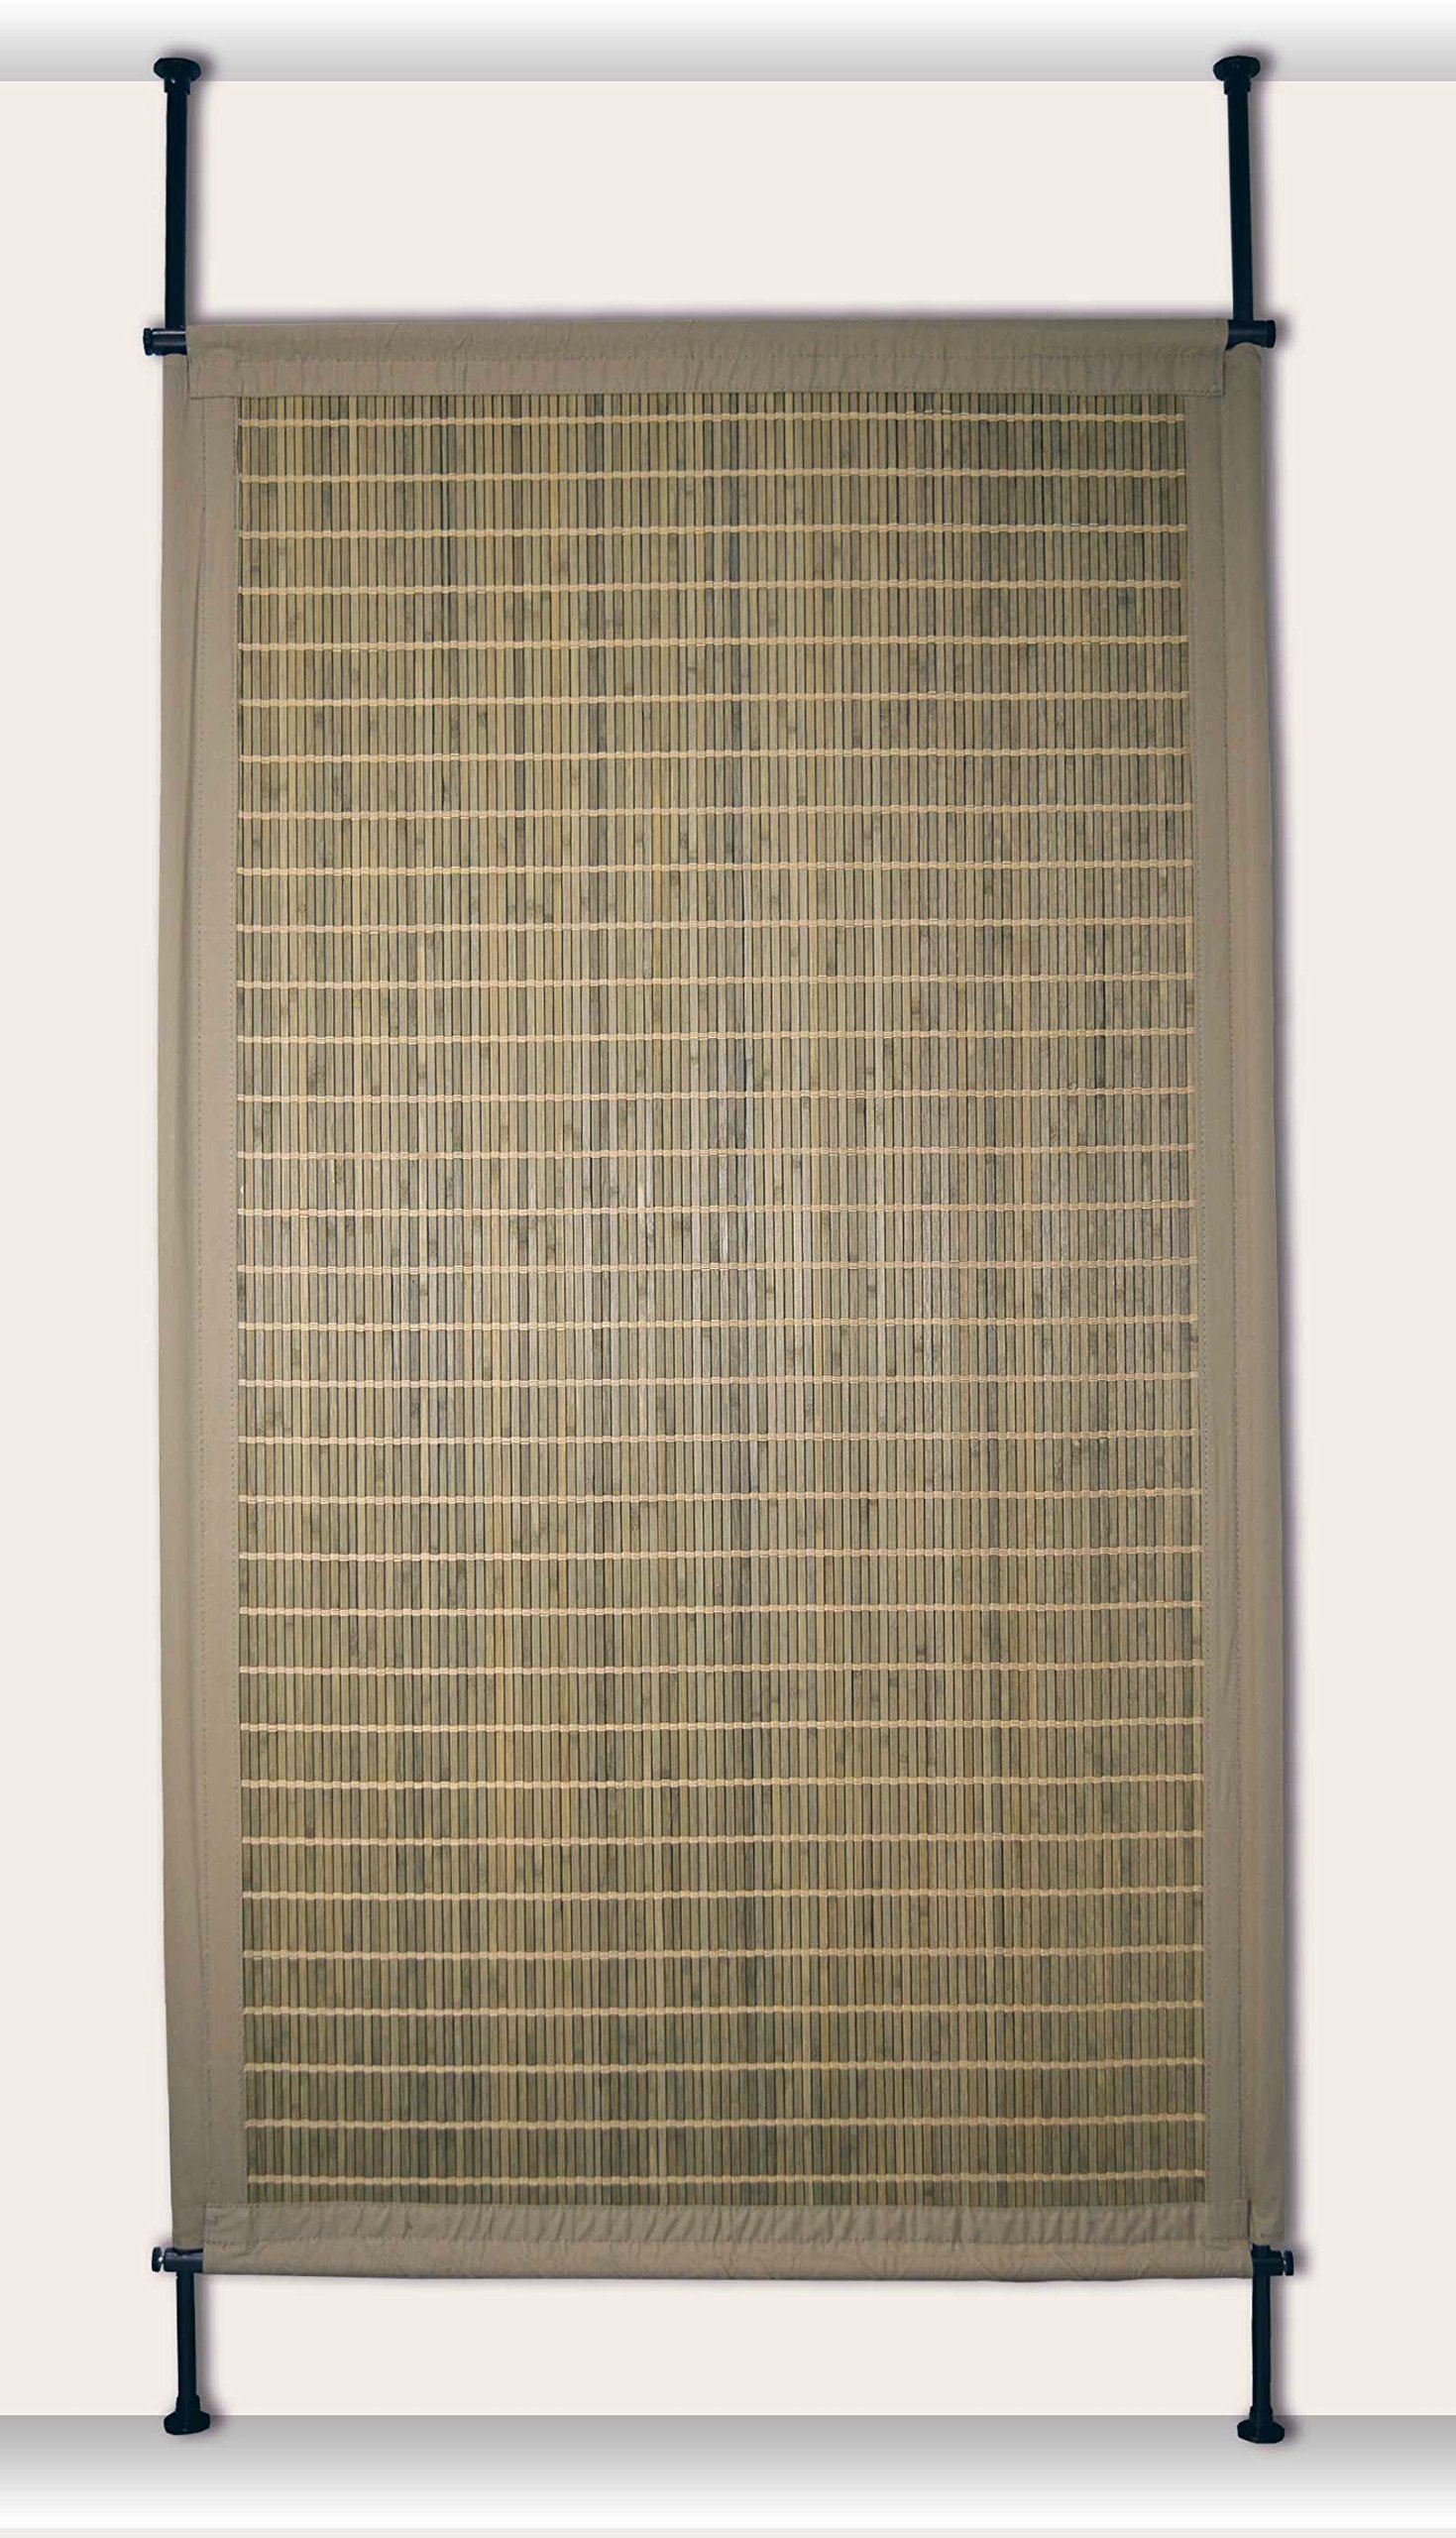 Versailles Home Fashions PP014-25 Bamboo Privacy Panel, 38'' x 68'', Driftwood